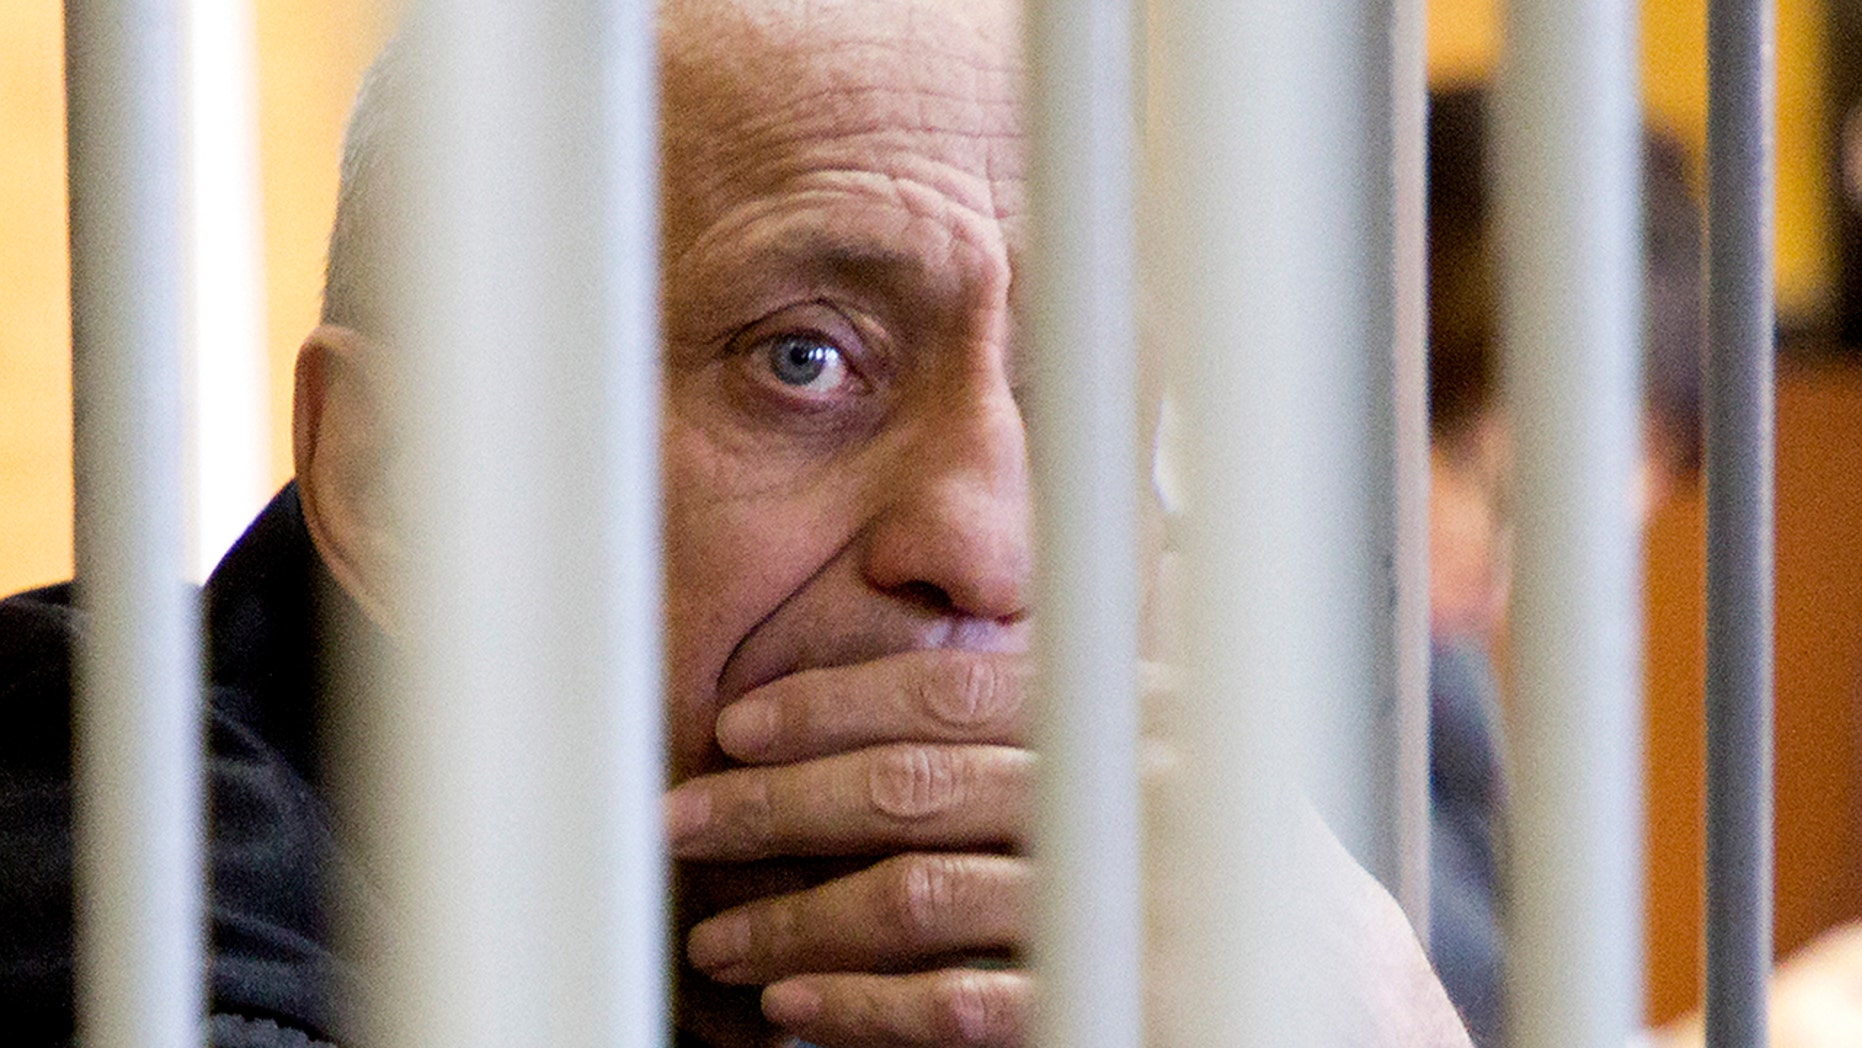 A court in Russia's eastern Siberia convicted Mikhail Popov, a former policeman of murdering 56 women, bringing the number he is believed to have killed to at least 78. (Julia Pykhalova, Komsomolskaya Pravda via AP)